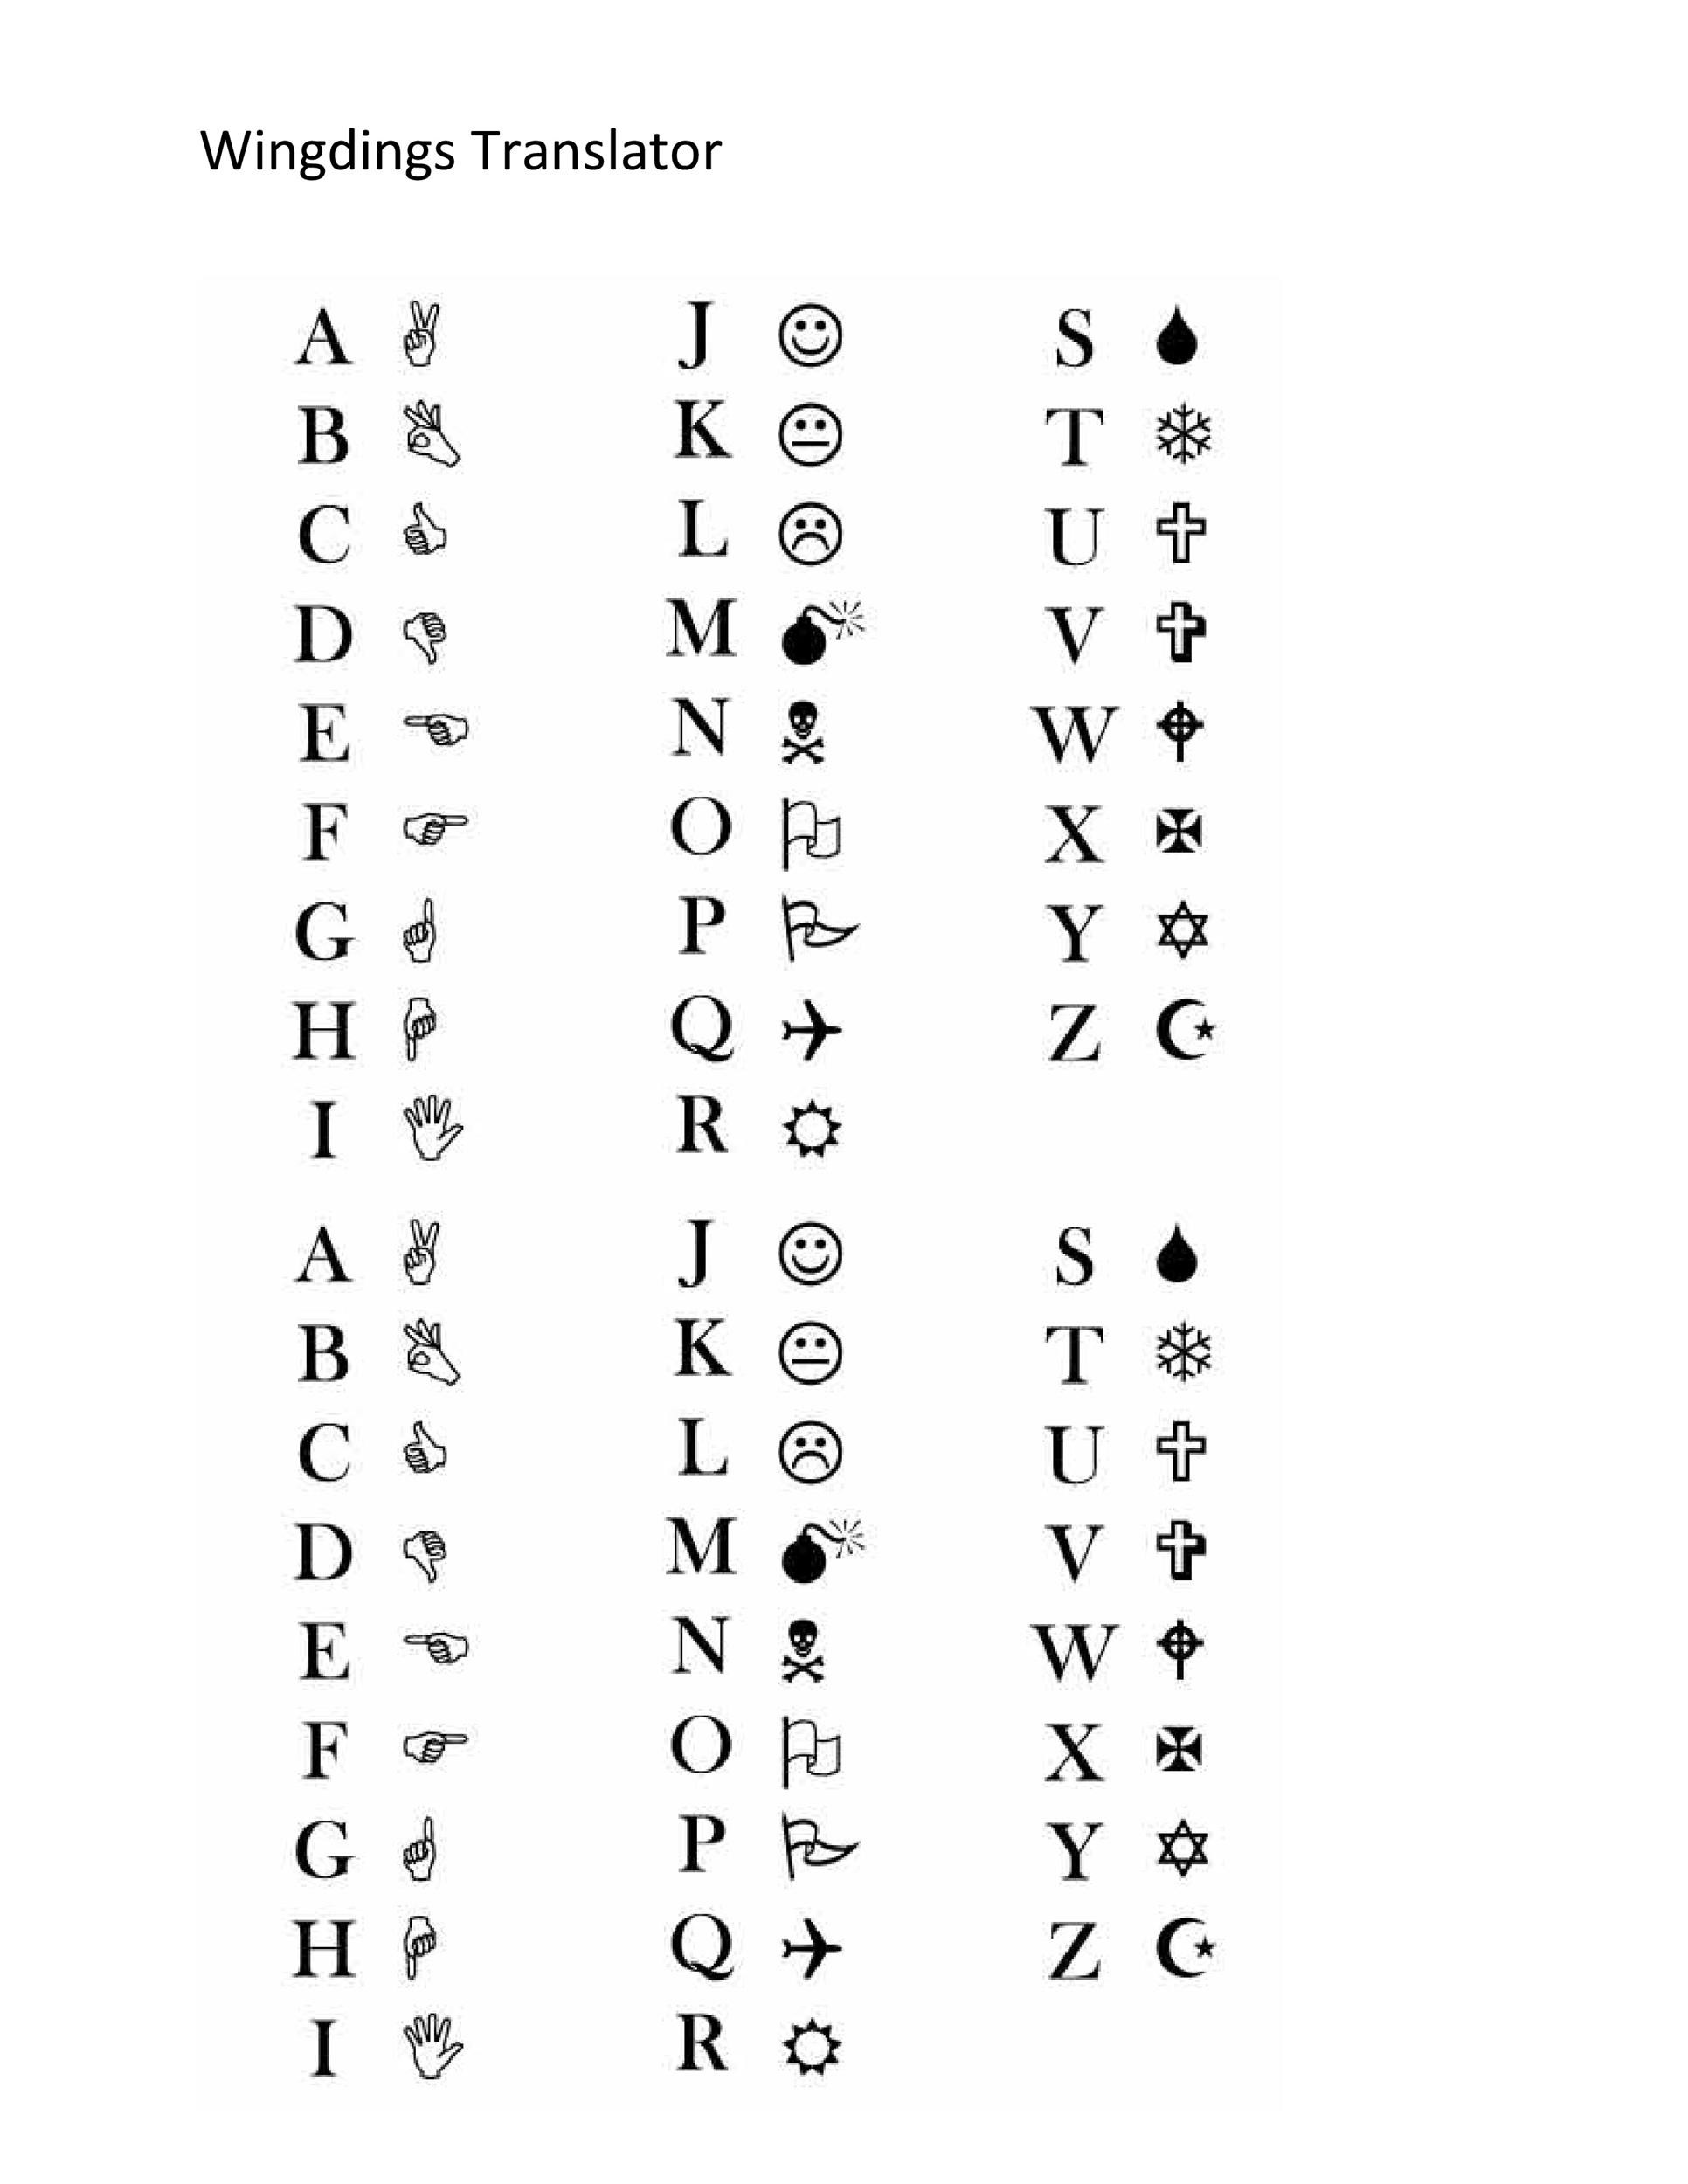 Wingdings Chart Finally A Printable Character Map Of The Wingdings